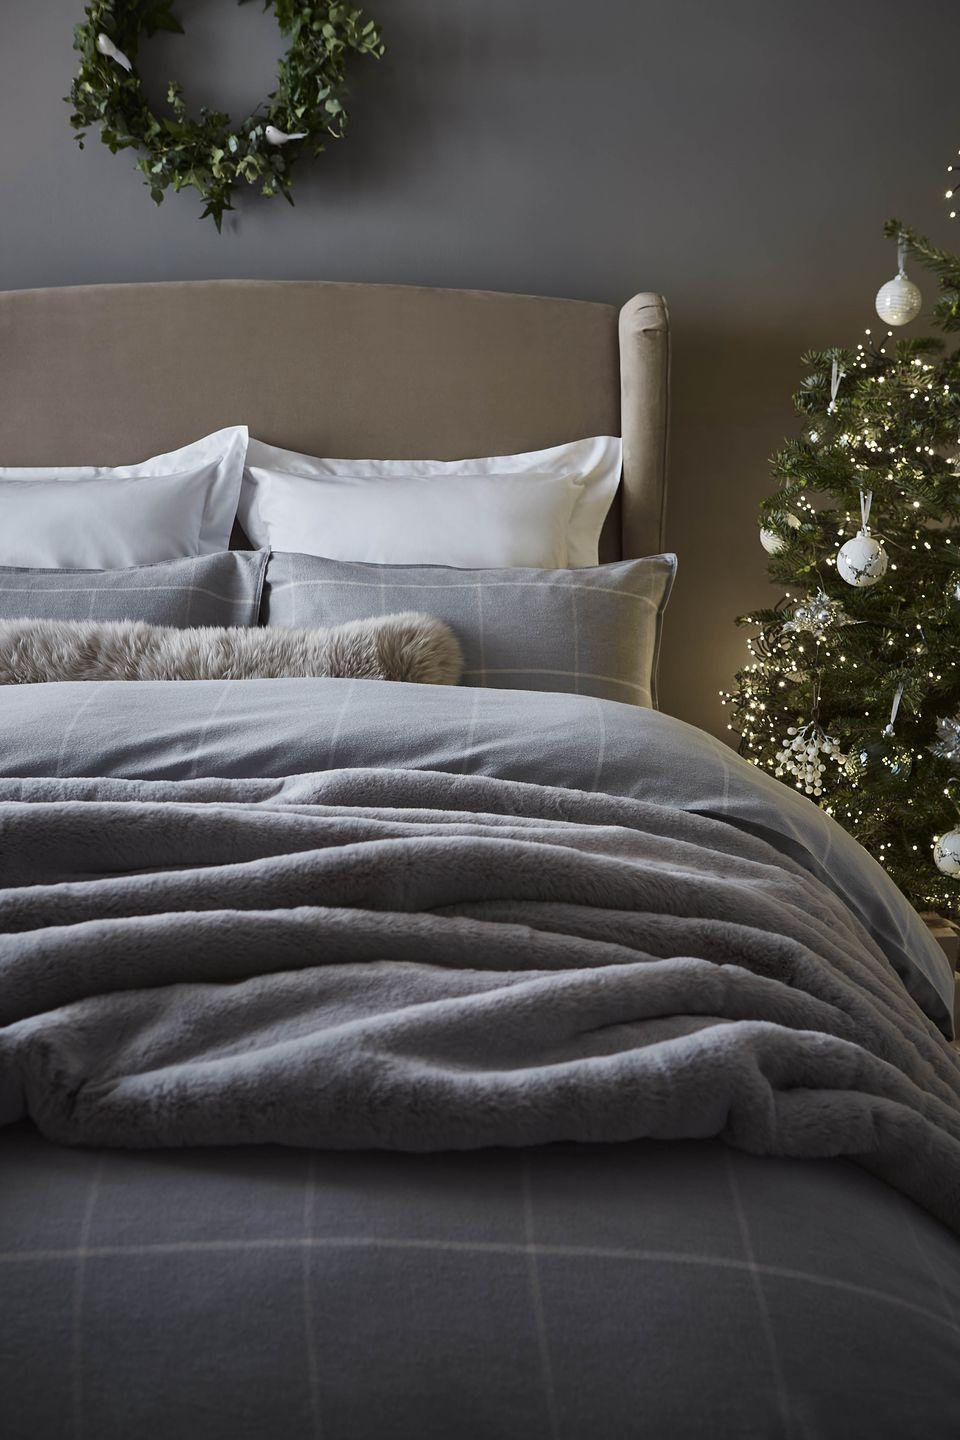 """<p>Short days and long nights mean more time at home, which is a great opportunity to ramp up the cosy volume in your bedroom. As part of Dunelm's Christmas range, you'll find fluffy throws, festive bedding and cushions to curl up with. </p><p><strong>READ MORE</strong>: <a href=""""https://www.housebeautiful.com/uk/lifestyle/g23481079/christmas-bedding/"""" rel=""""nofollow noopener"""" target=""""_blank"""" data-ylk=""""slk:26 Christmas bedding sets every bedroom needs this festive season"""" class=""""link rapid-noclick-resp"""">26 Christmas bedding sets every bedroom needs this festive season</a></p>"""